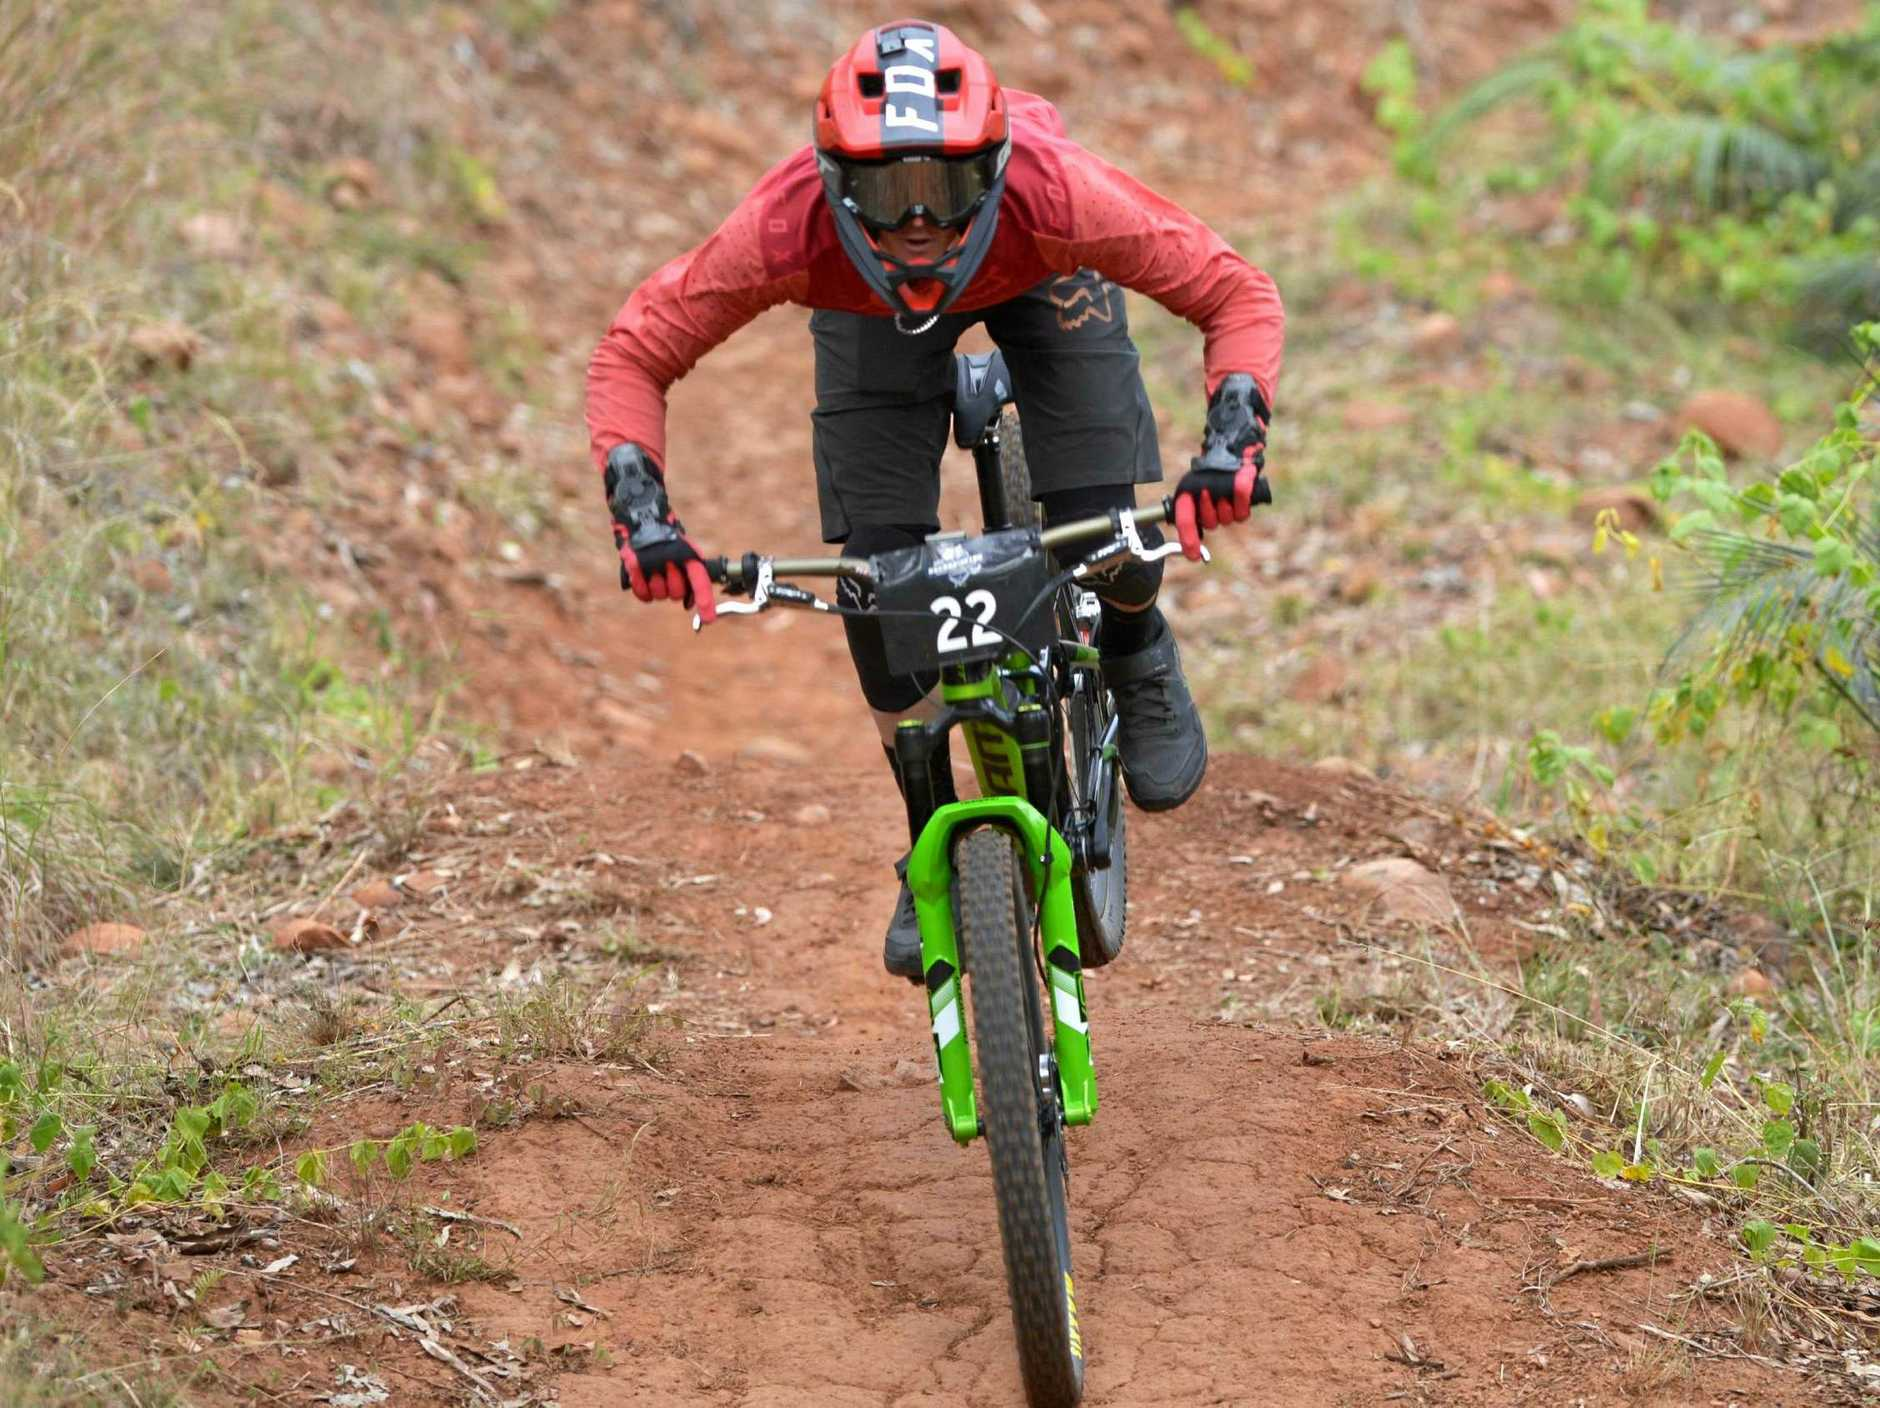 HOT PROSPECT: Rockhampton's Cody White is expected to be right in the mix in the elite men's category in Round 4 of the Queensland Enduro Series to be raced on the First Turkey trails on Sunday.